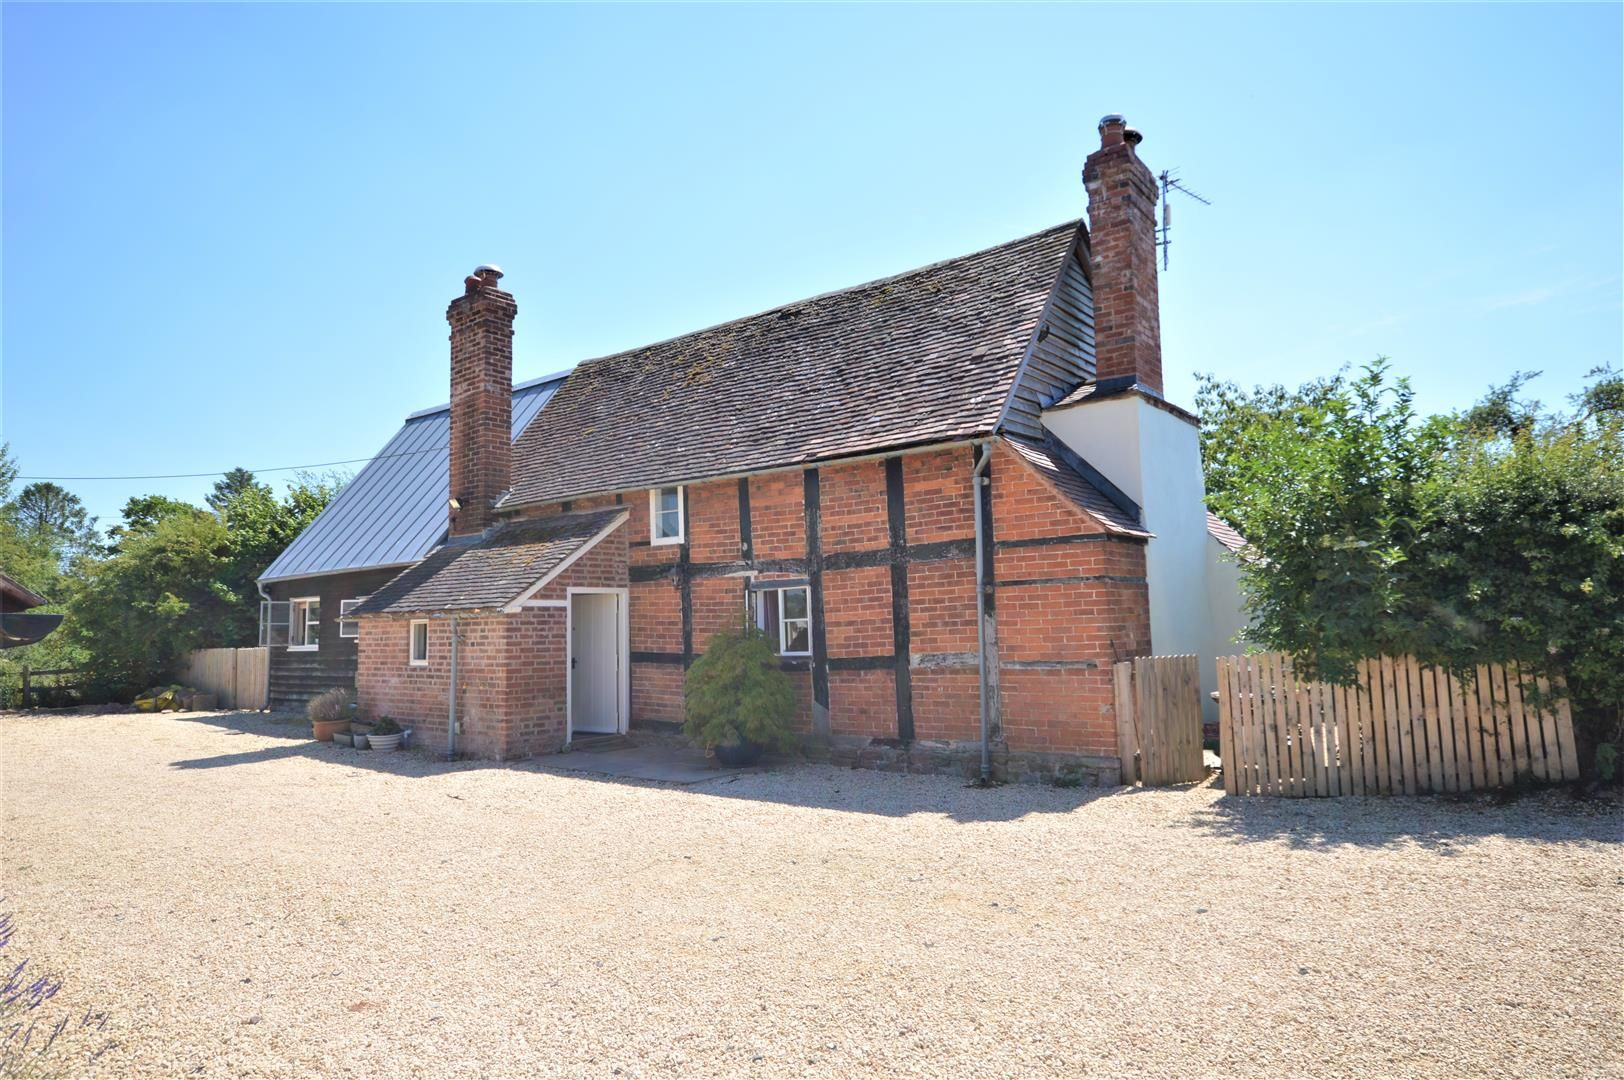 3 bed detached for sale in Canon Frome 5